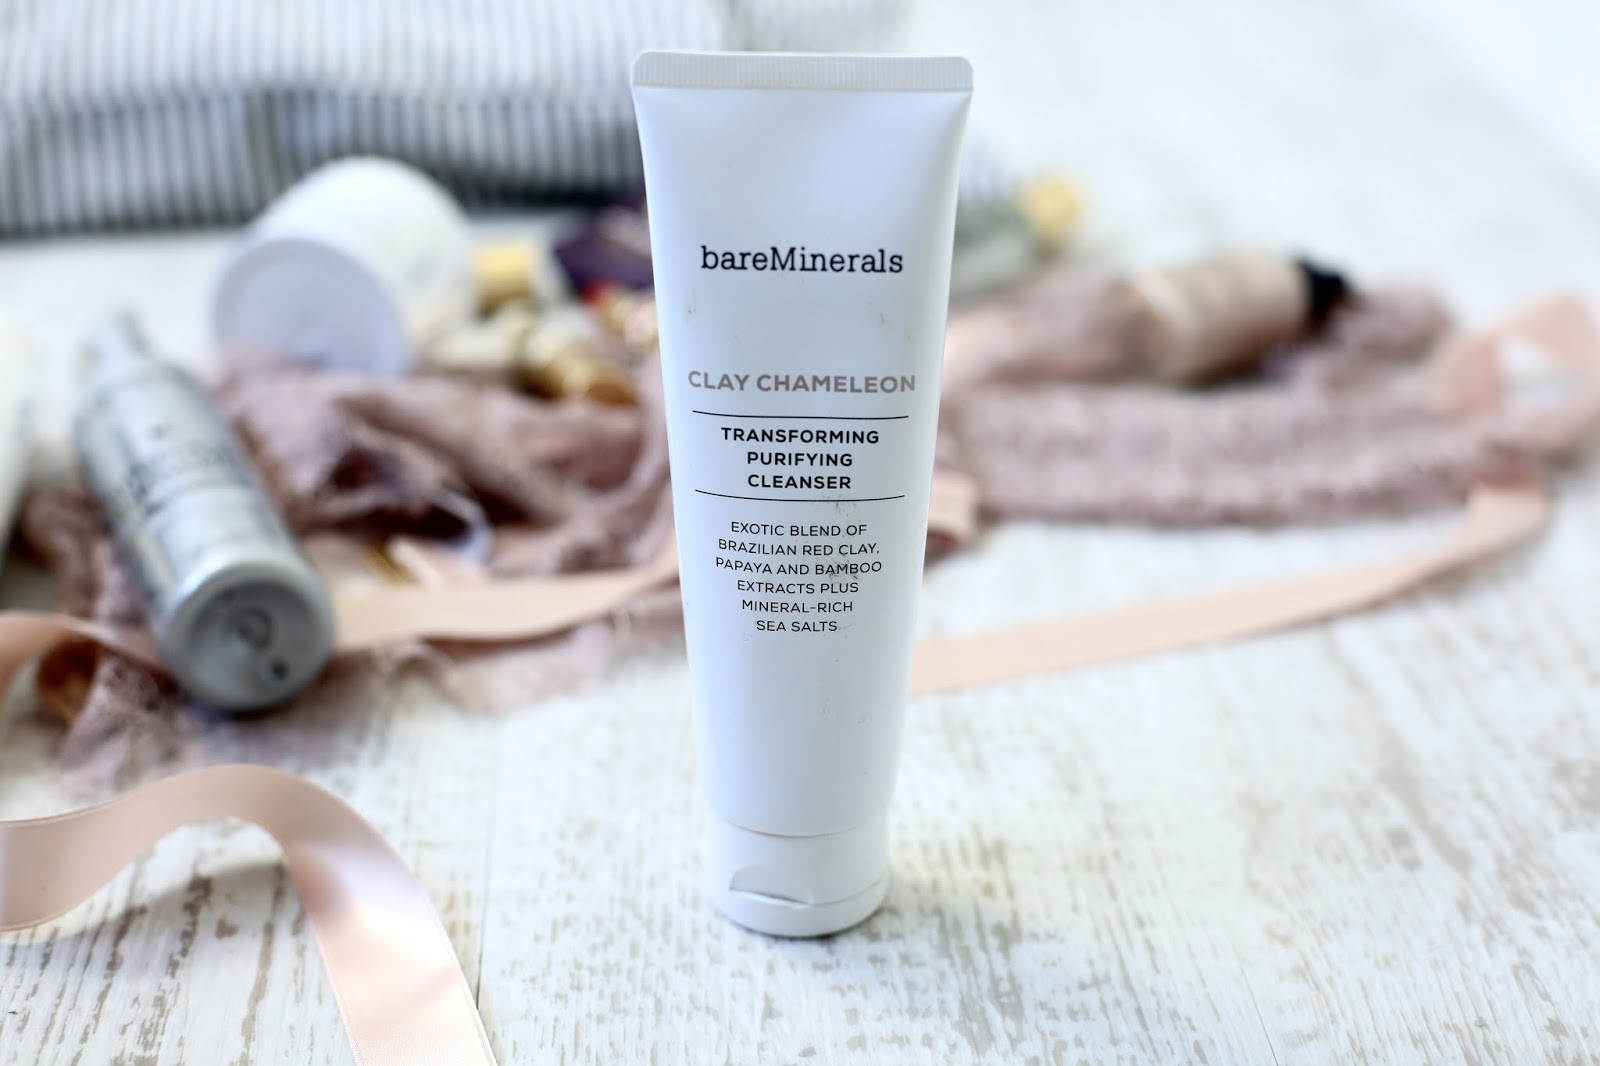 bareMinerals Clay Chameleon - Transforming Purifying Cleanser